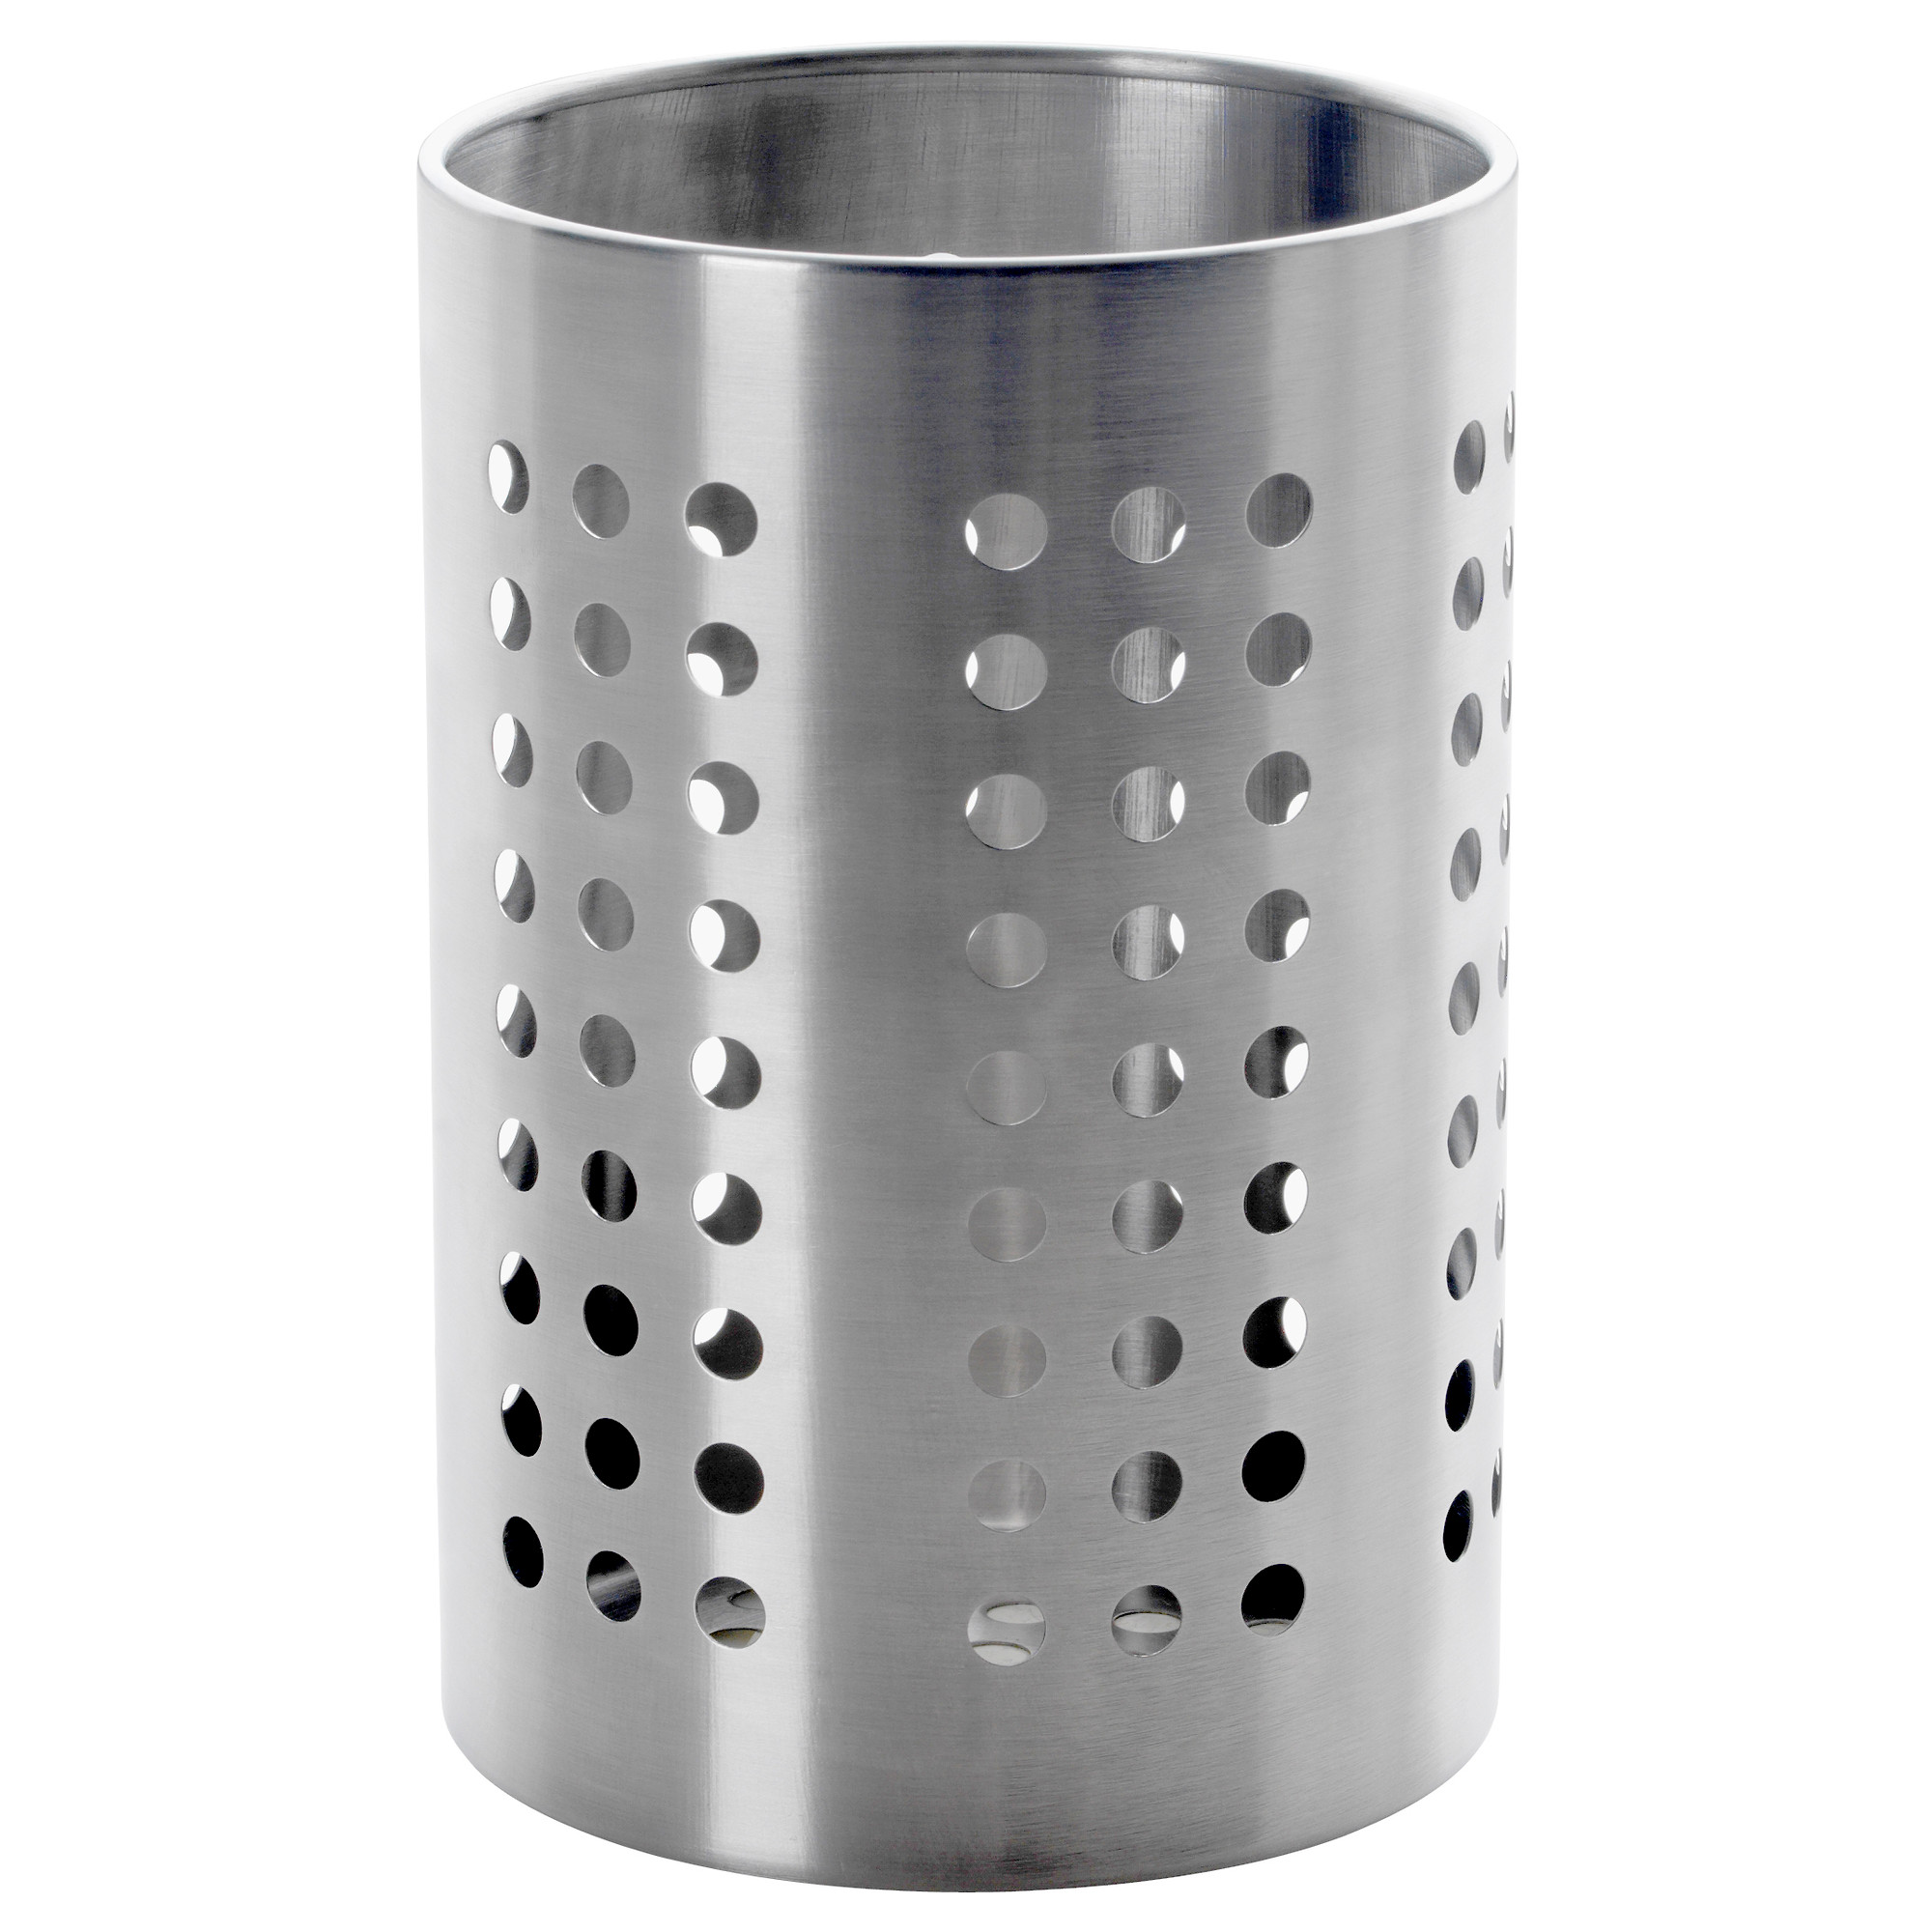 stainless steel utensil caddy for kitchen and dining table accessories ideas